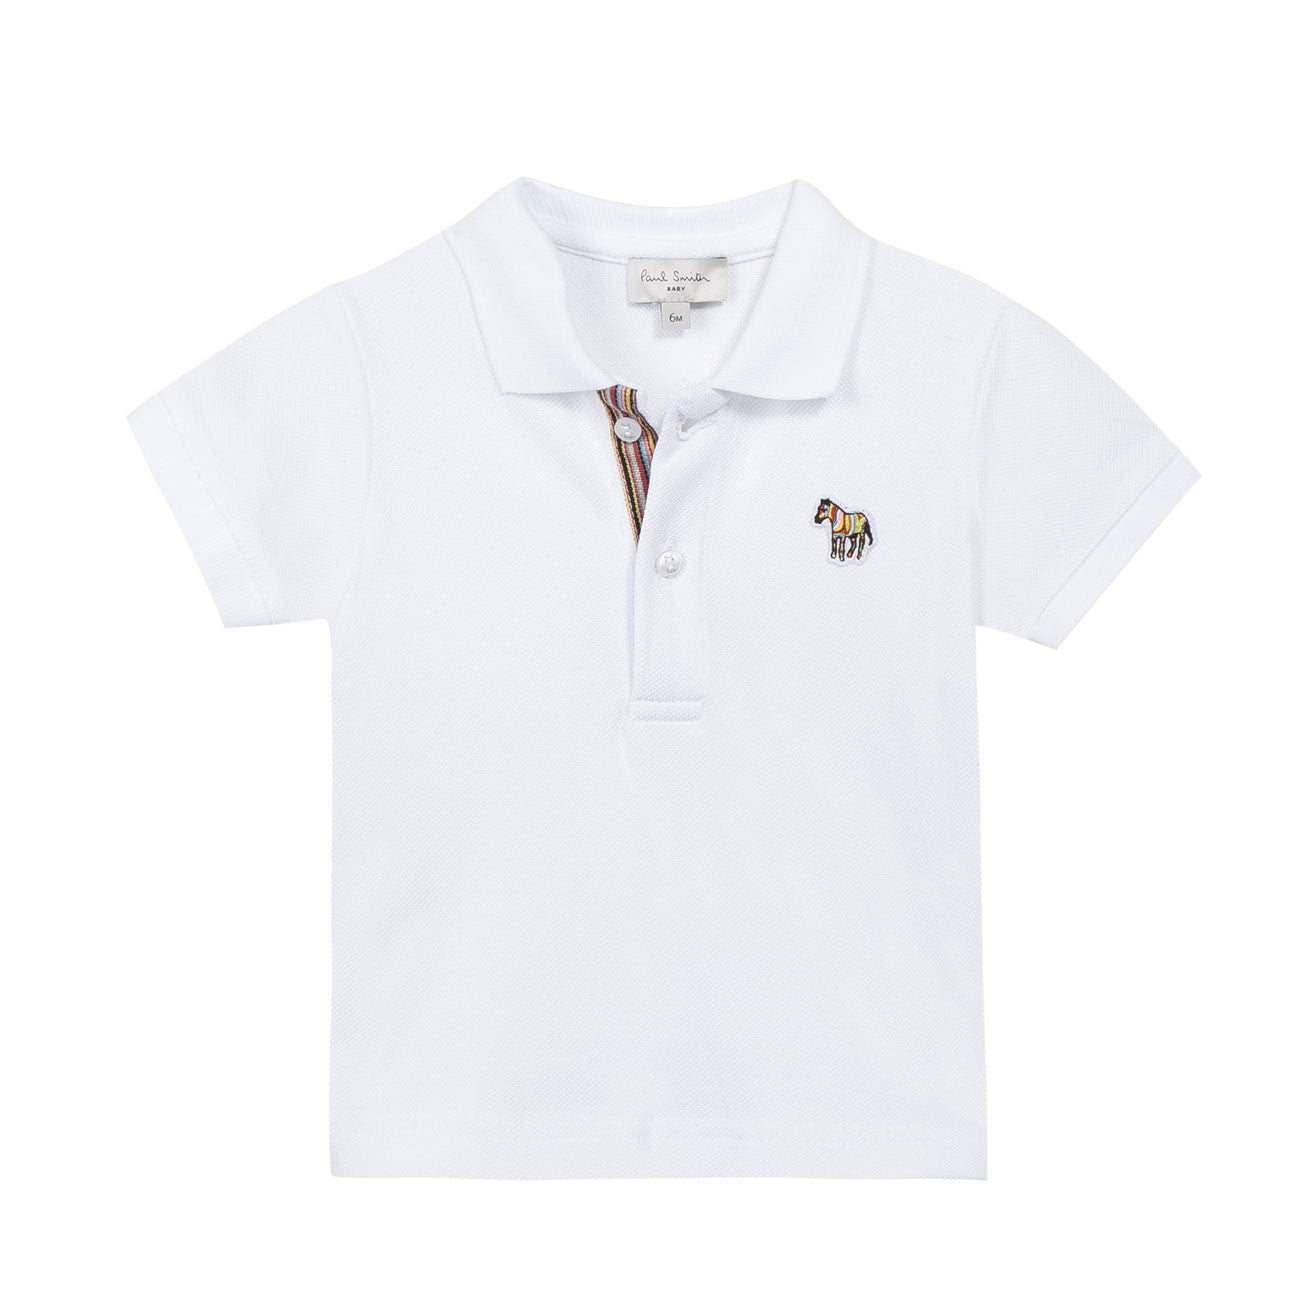 Paul Smith White Polo Shirt - Ladida